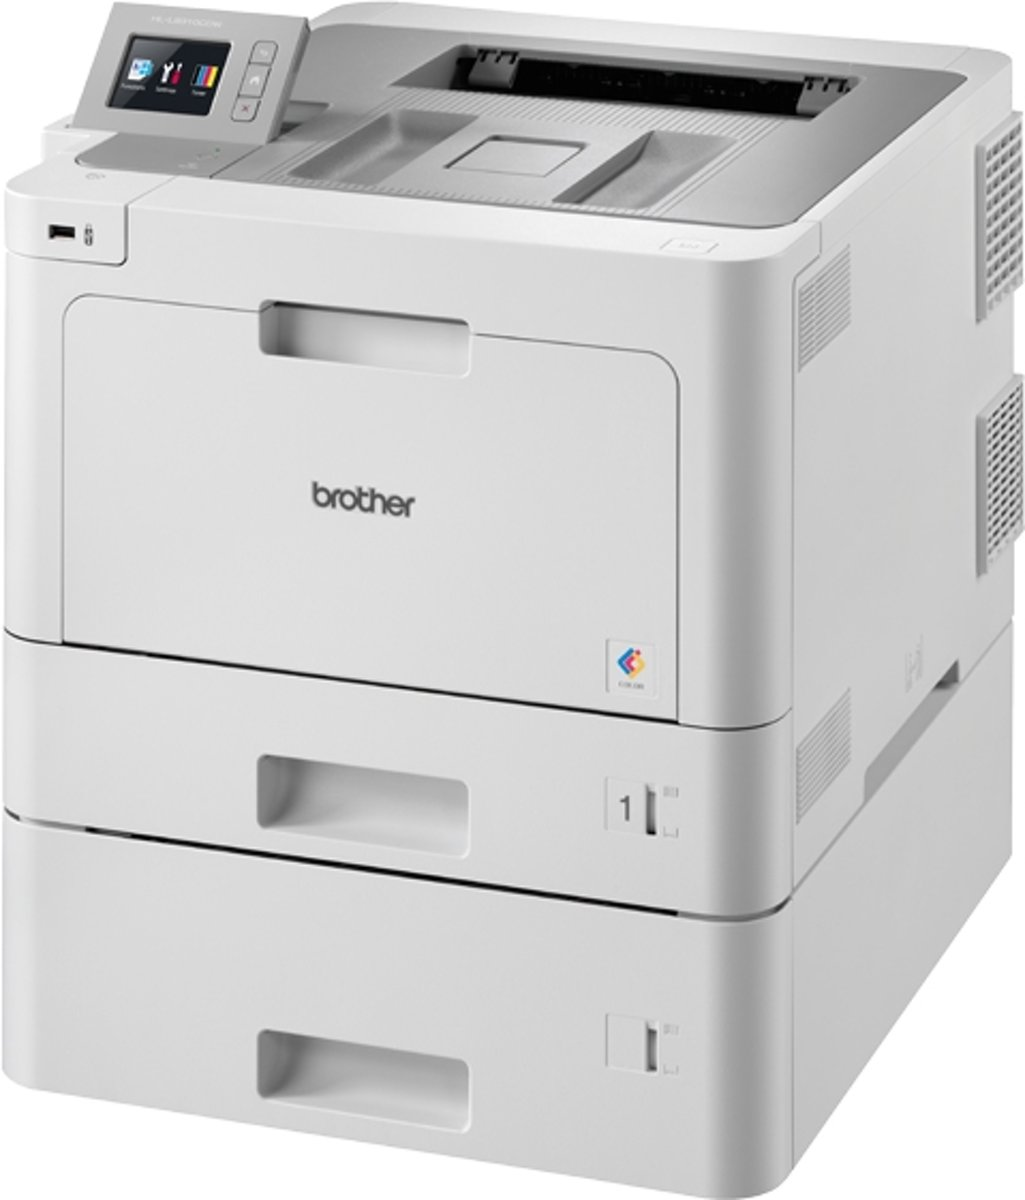 HL-L9310CDW - All-in-One Kleurenlaserprinter